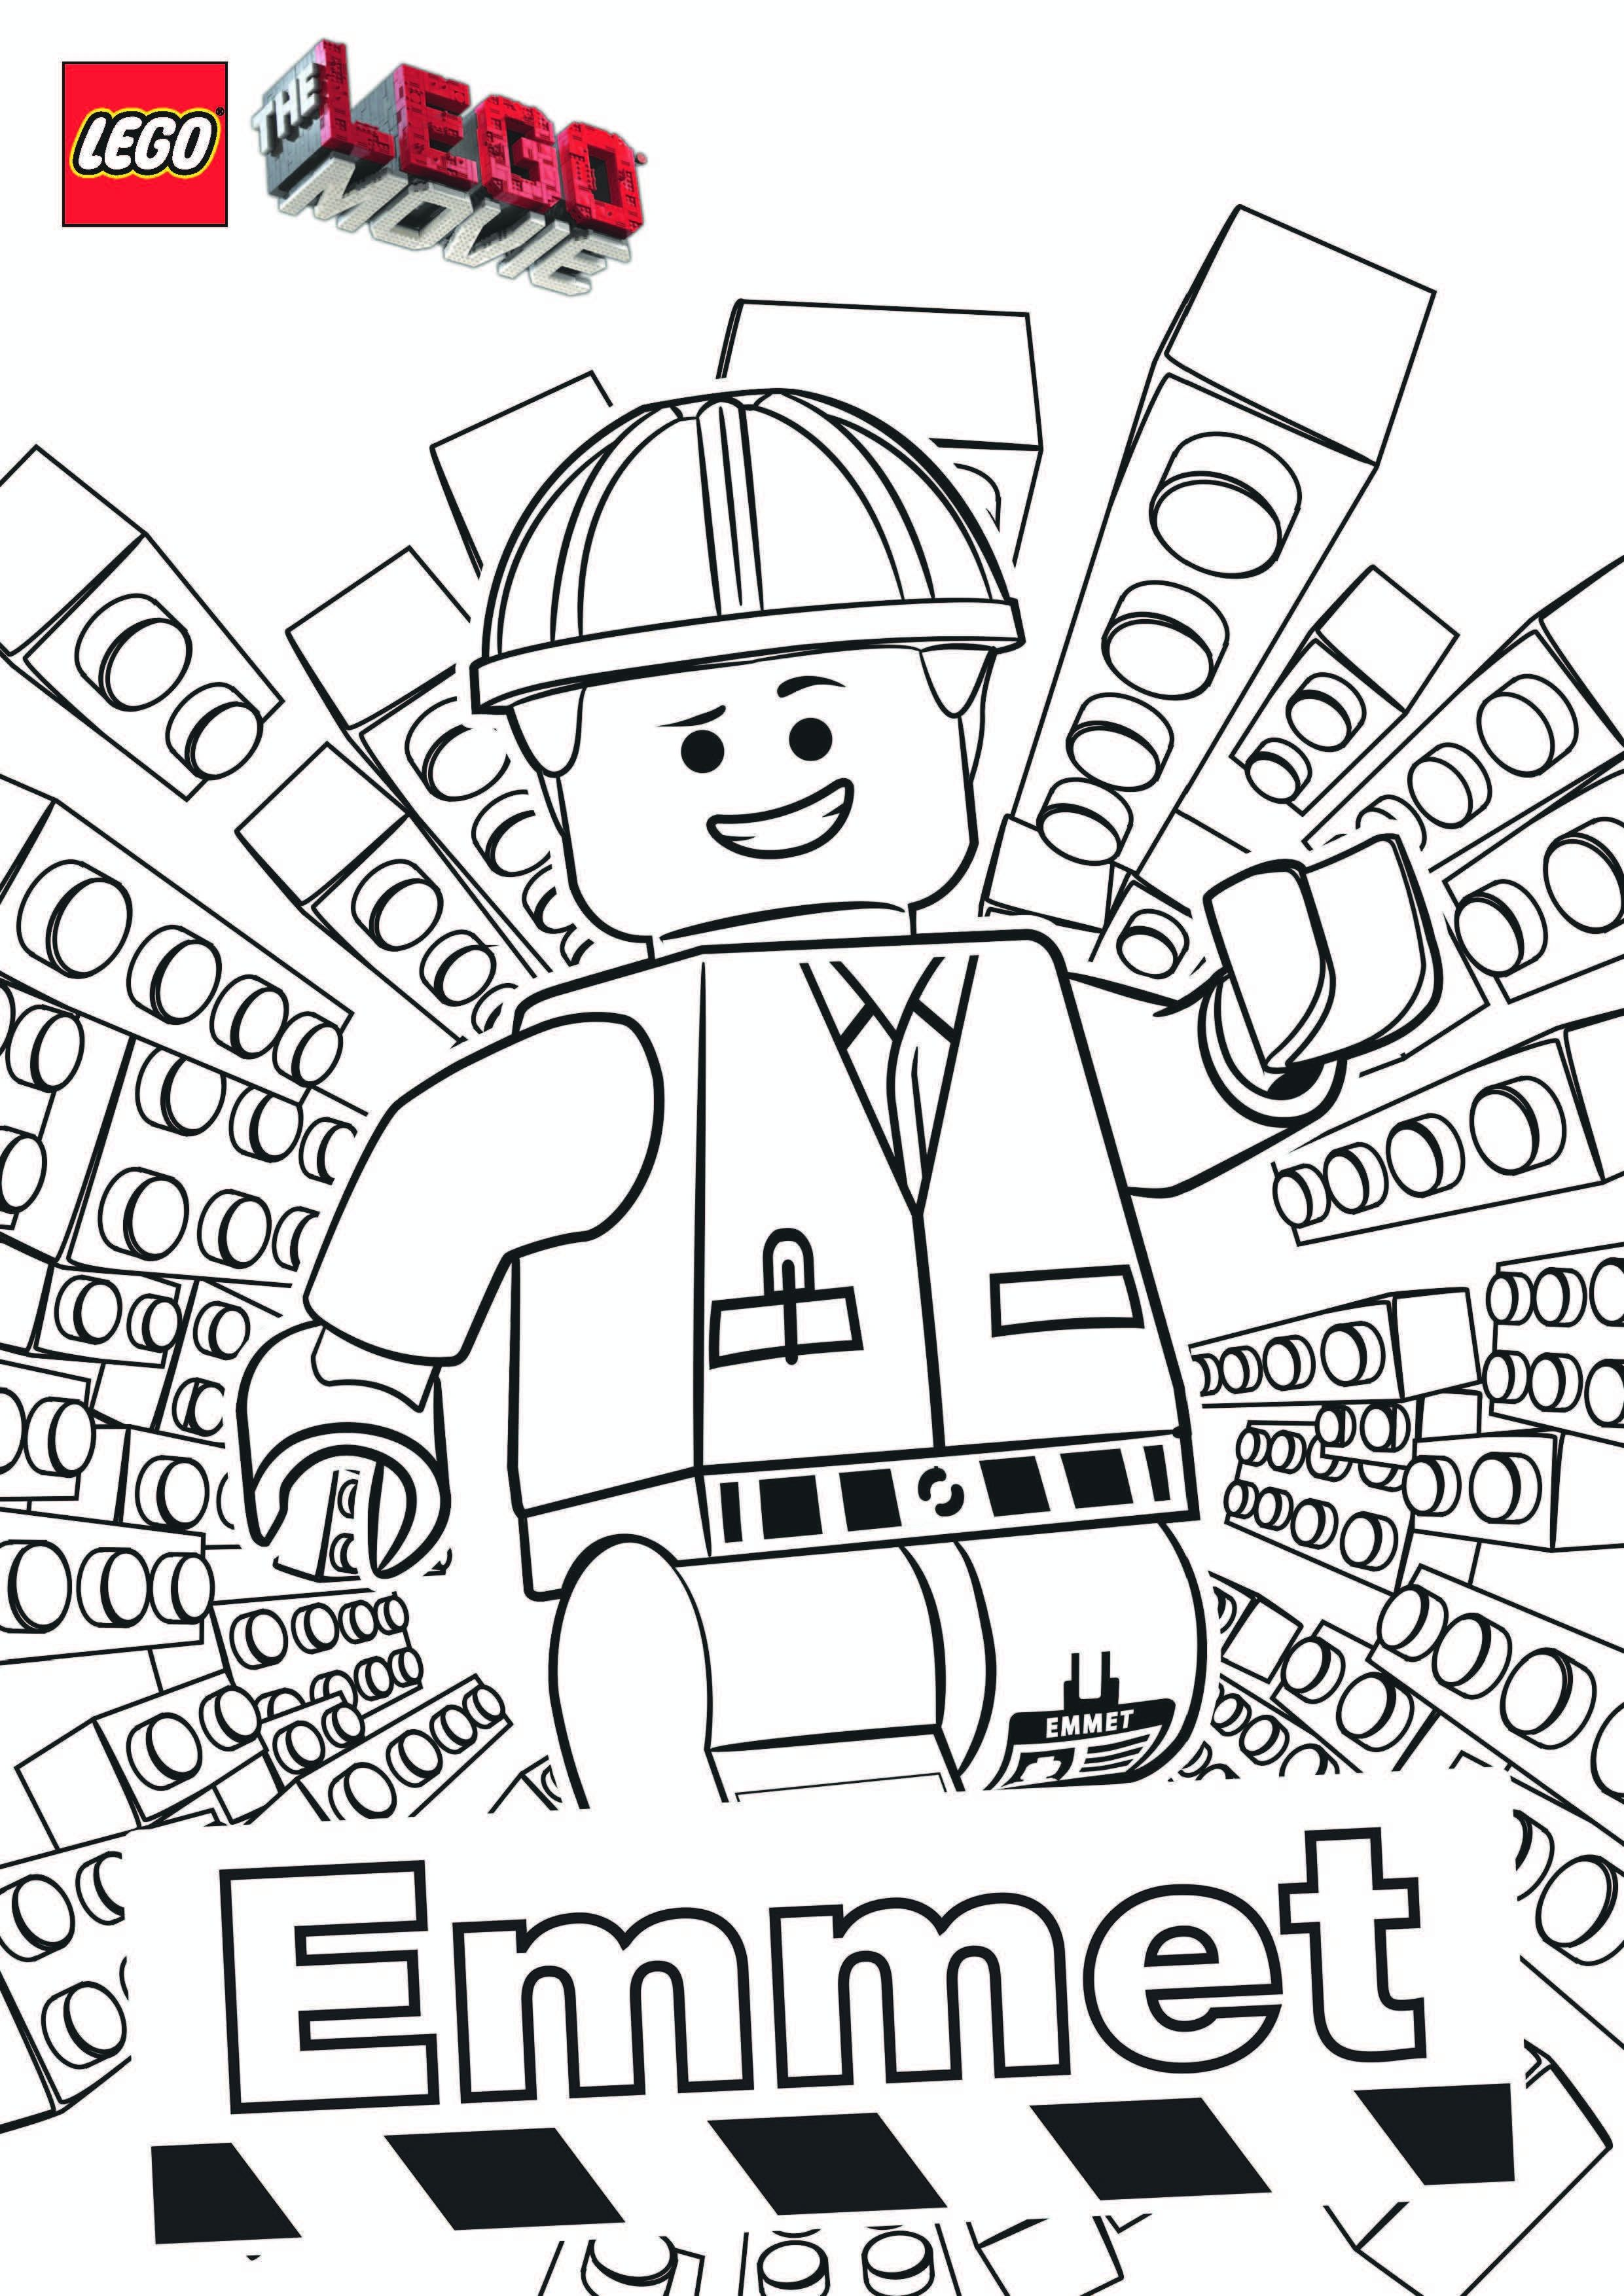 Lego Valentine Coloring Pages Free Lego Movie Coloring Pages Lego Coloring Pages Lego Coloring